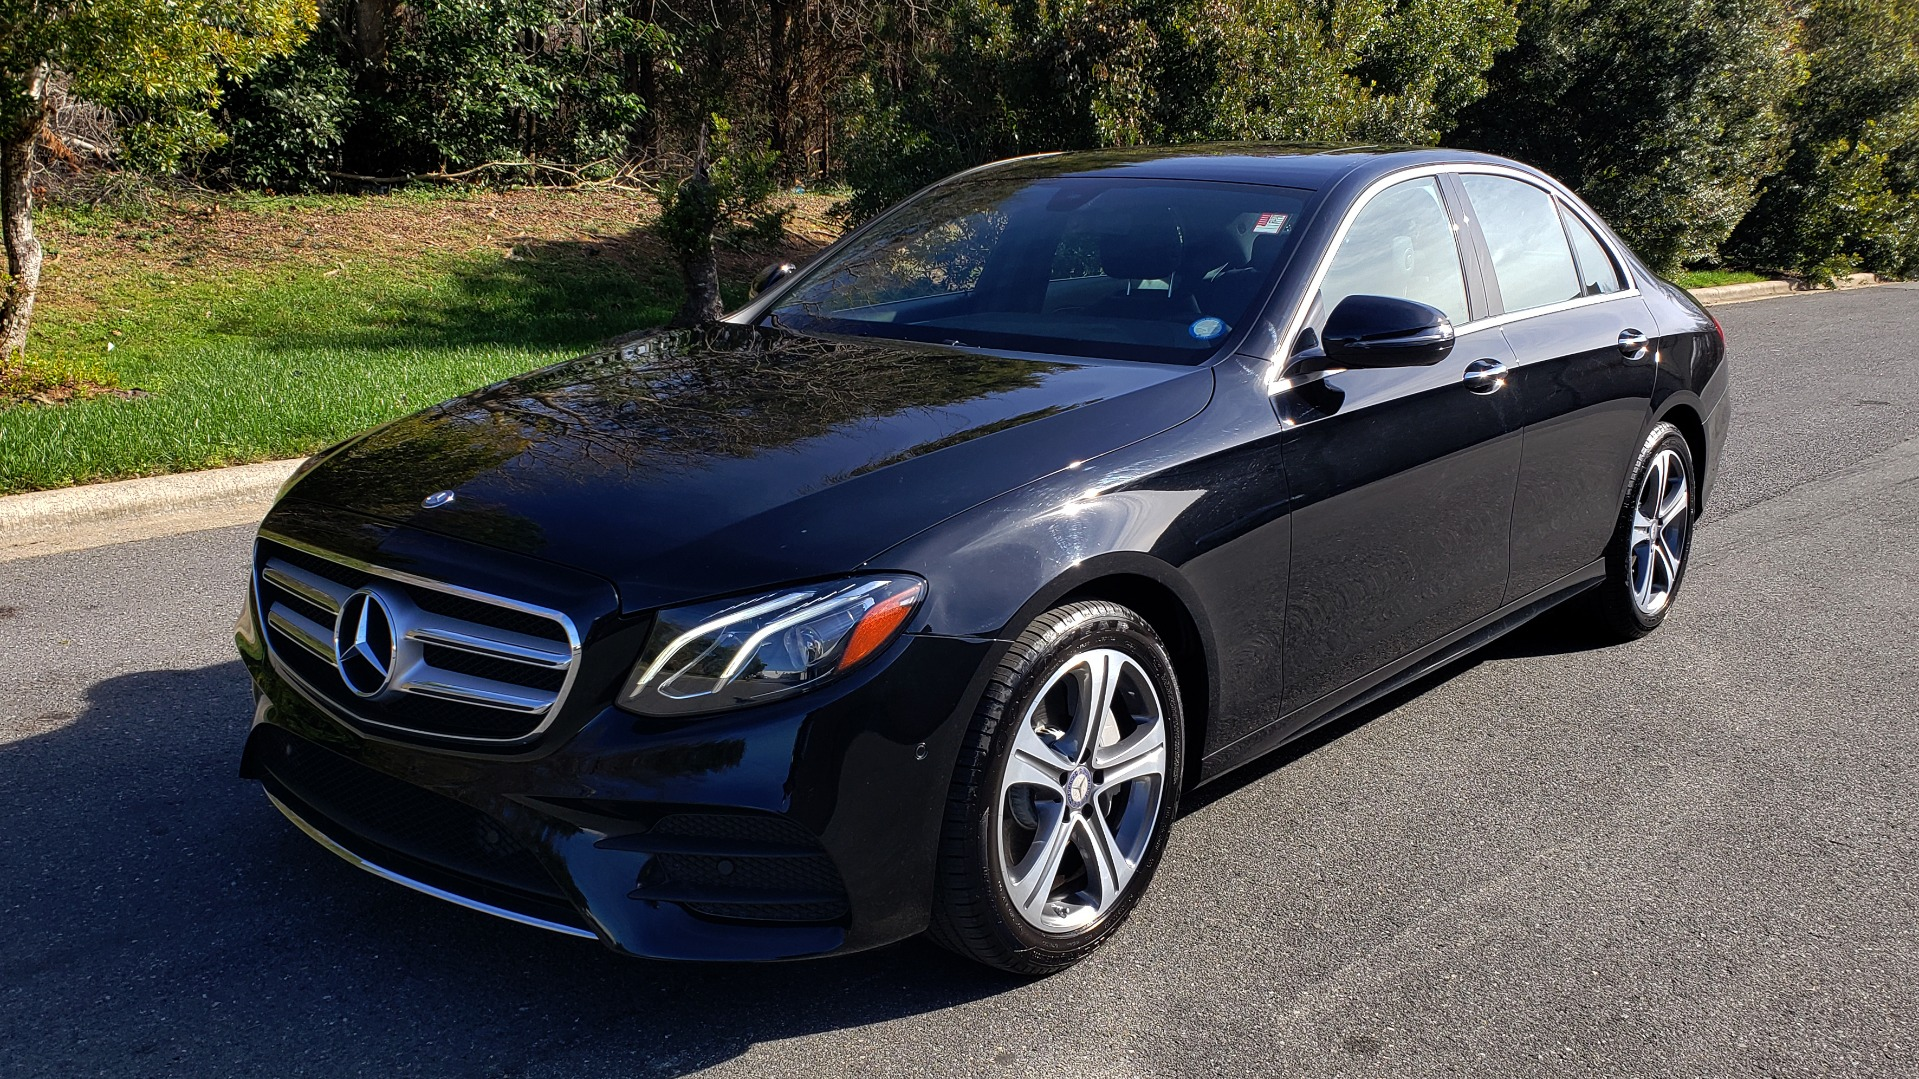 Used 2017 Mercedes-Benz E-CLASS E 300 PREMIUM / NAV / SUNROOF / BURMESTER / HTD STS / REARVIEW for sale Sold at Formula Imports in Charlotte NC 28227 1